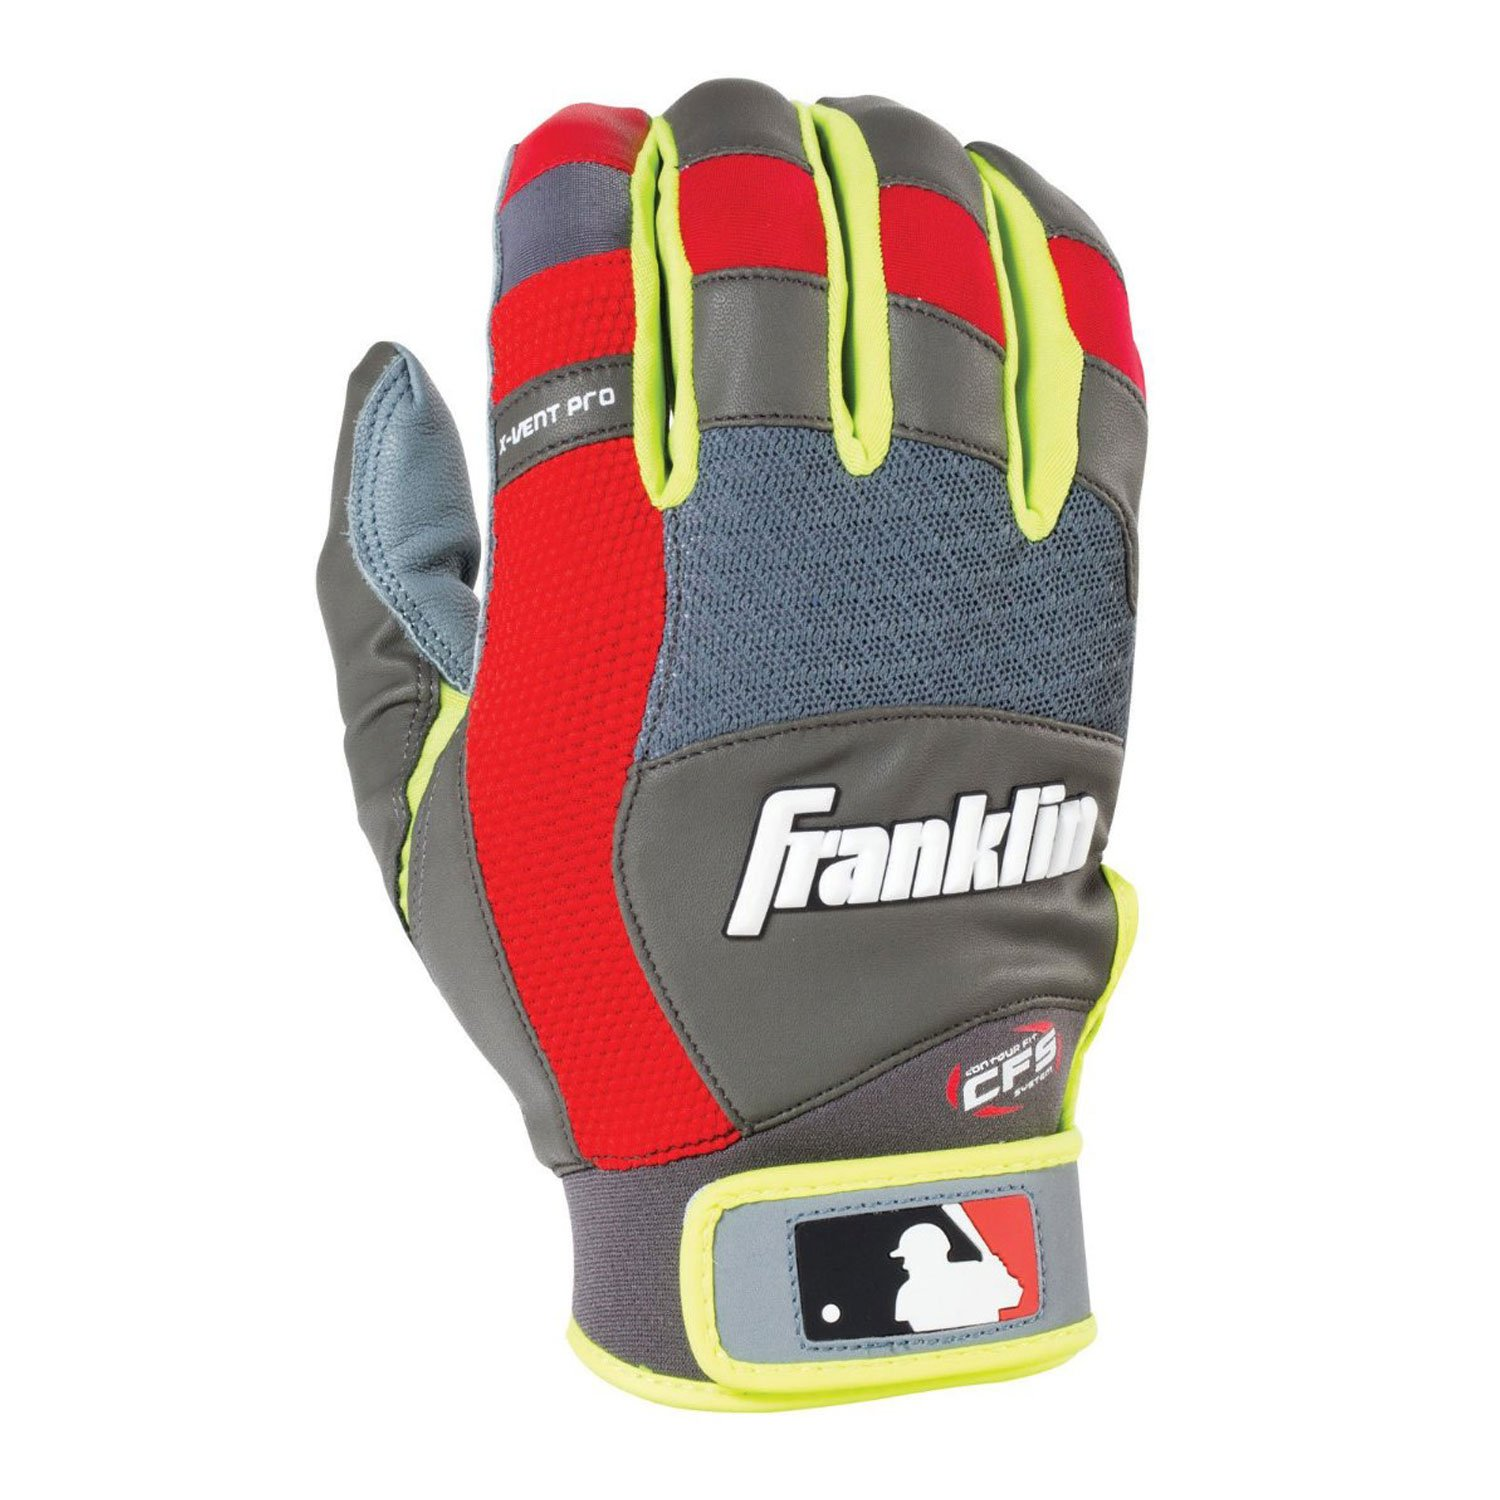 Franklin Sports MLB X-Vent プロバッティンググローブ ペア B013LPUC26 XL|Gray/Red/Optic Yellow Gray/Red/Optic Yellow XL